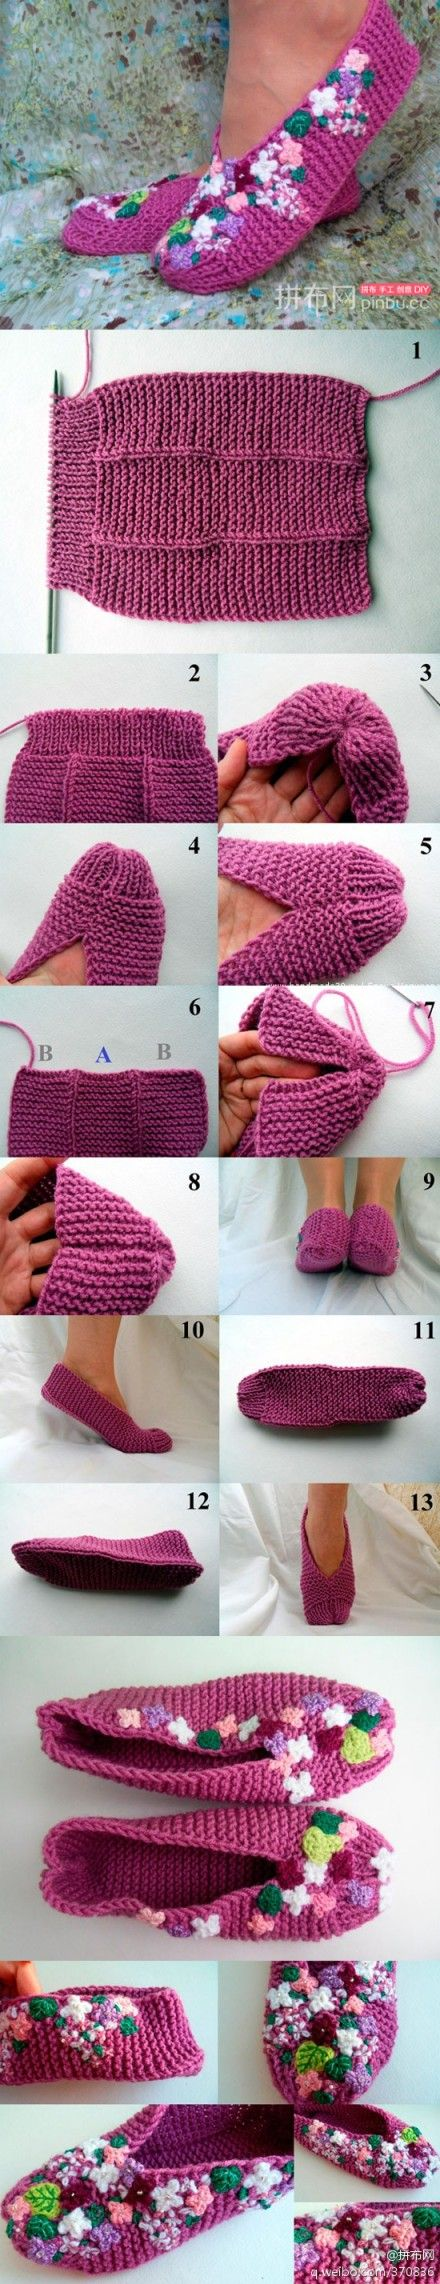 FREE Knitted Lilac Slippers pattern